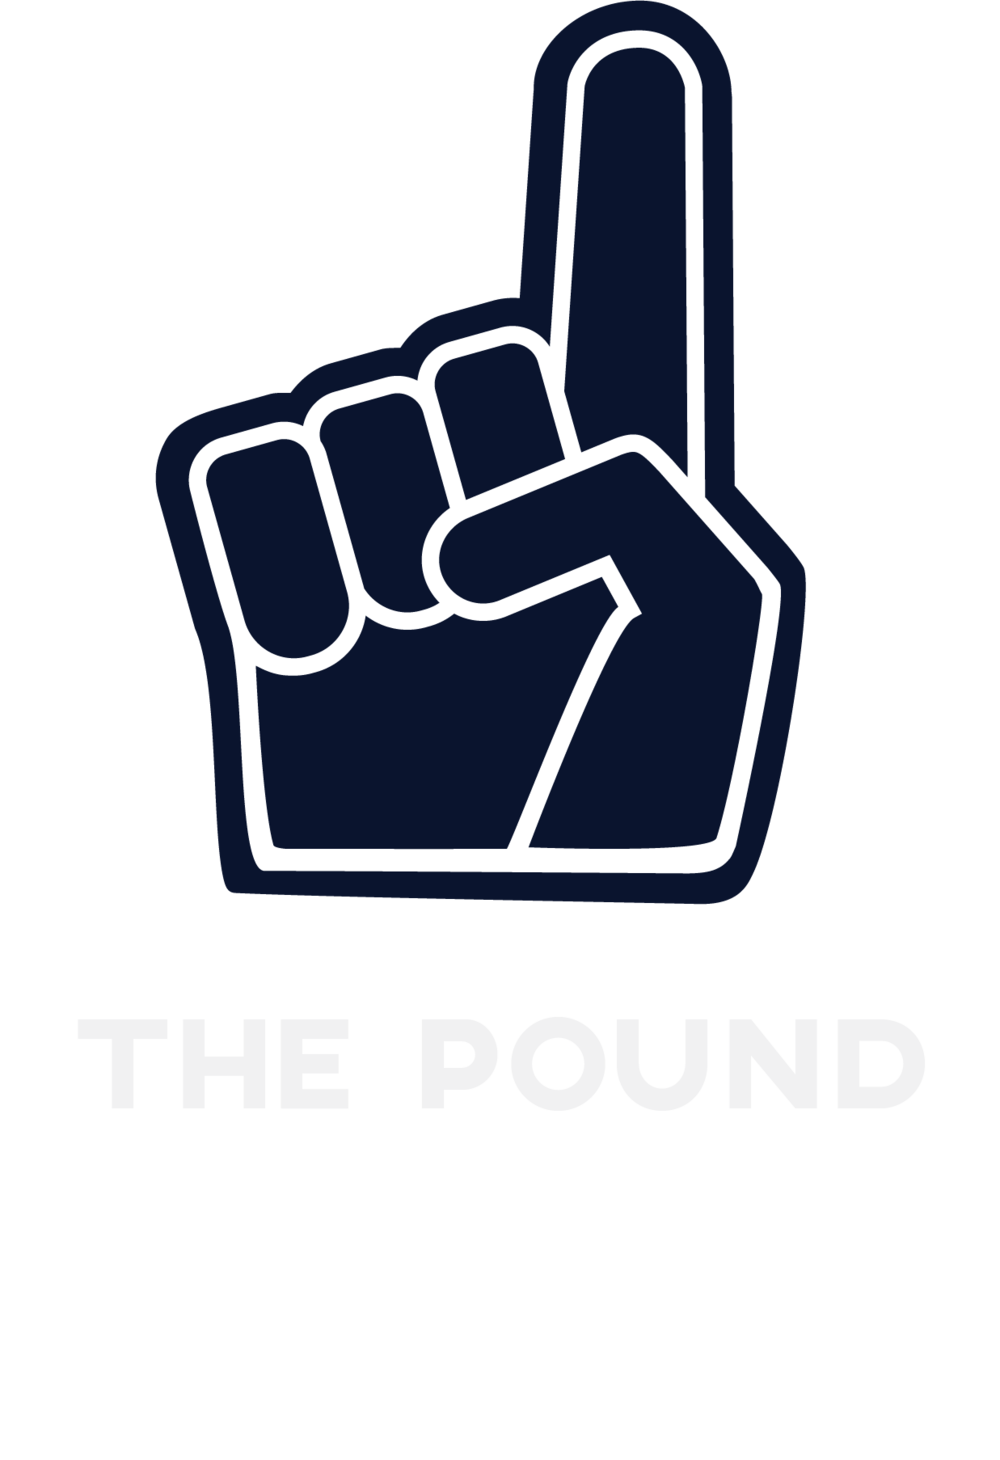 The logo for The Pound. (Photo supplied by writer.)